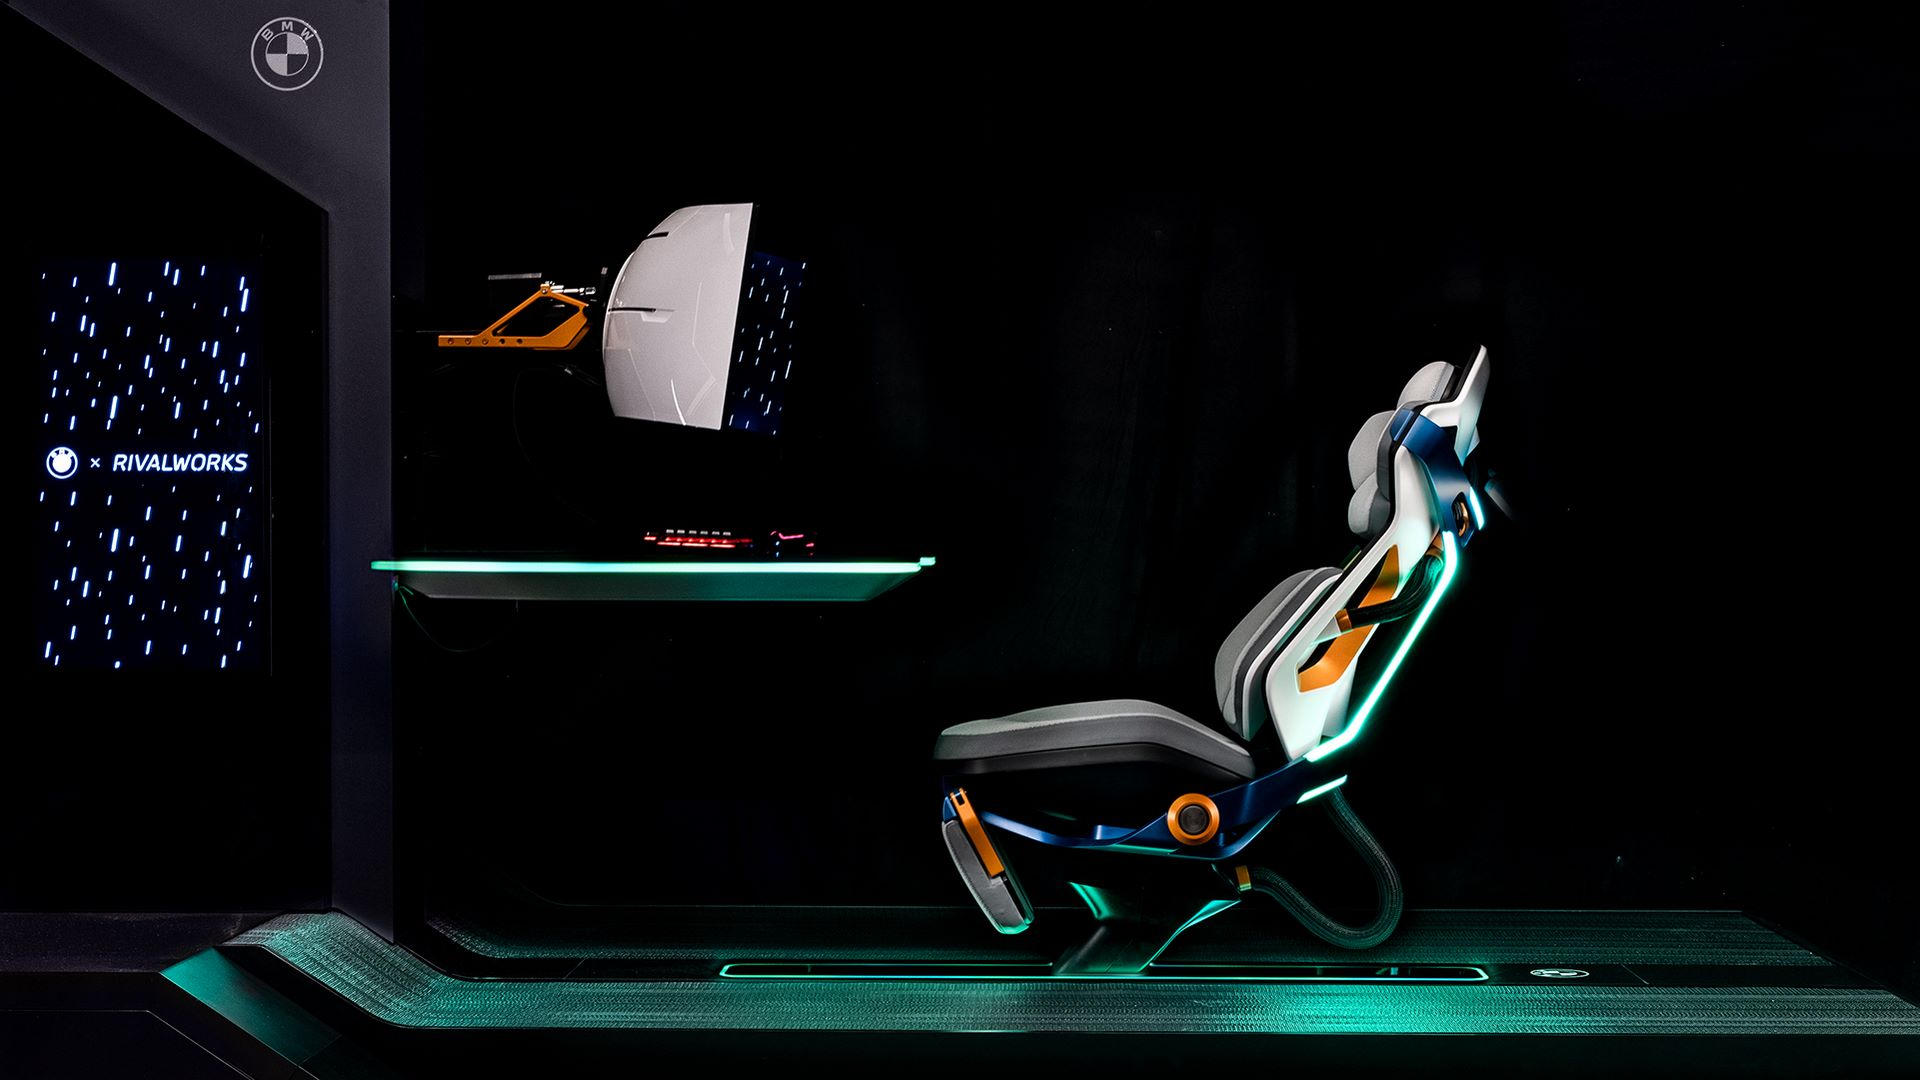 BMW-Rival-Rig-Gaming-chair-10